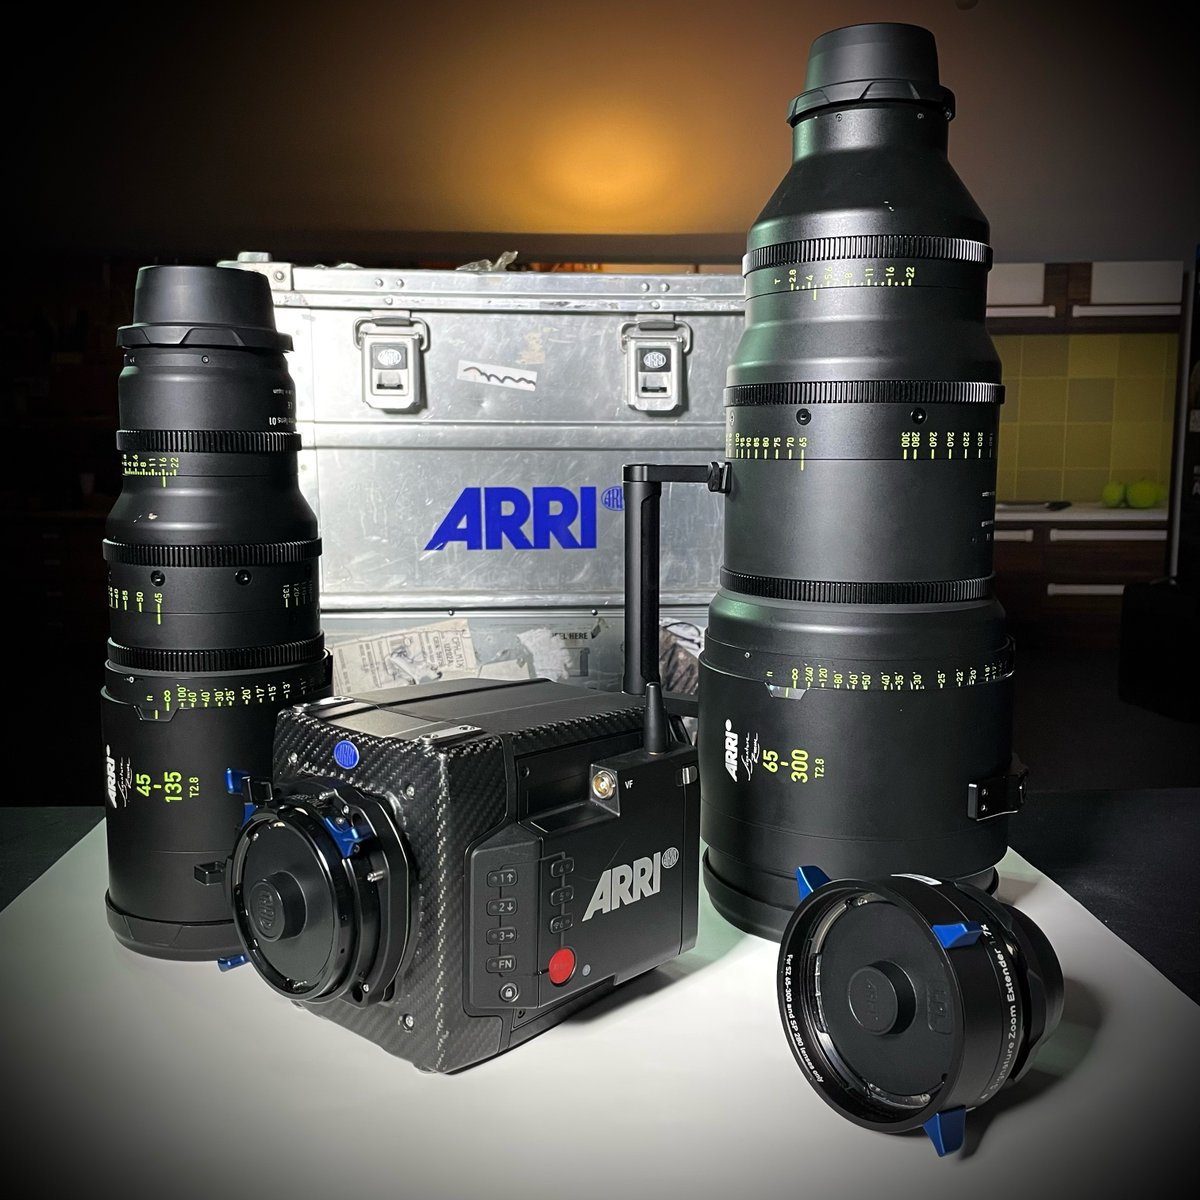 This week at Visual Impact we have been helping our clients get hands-on with ARRI's new Signature Zooms. If you haven't already ordered, give us a call for info on how to secure yours!